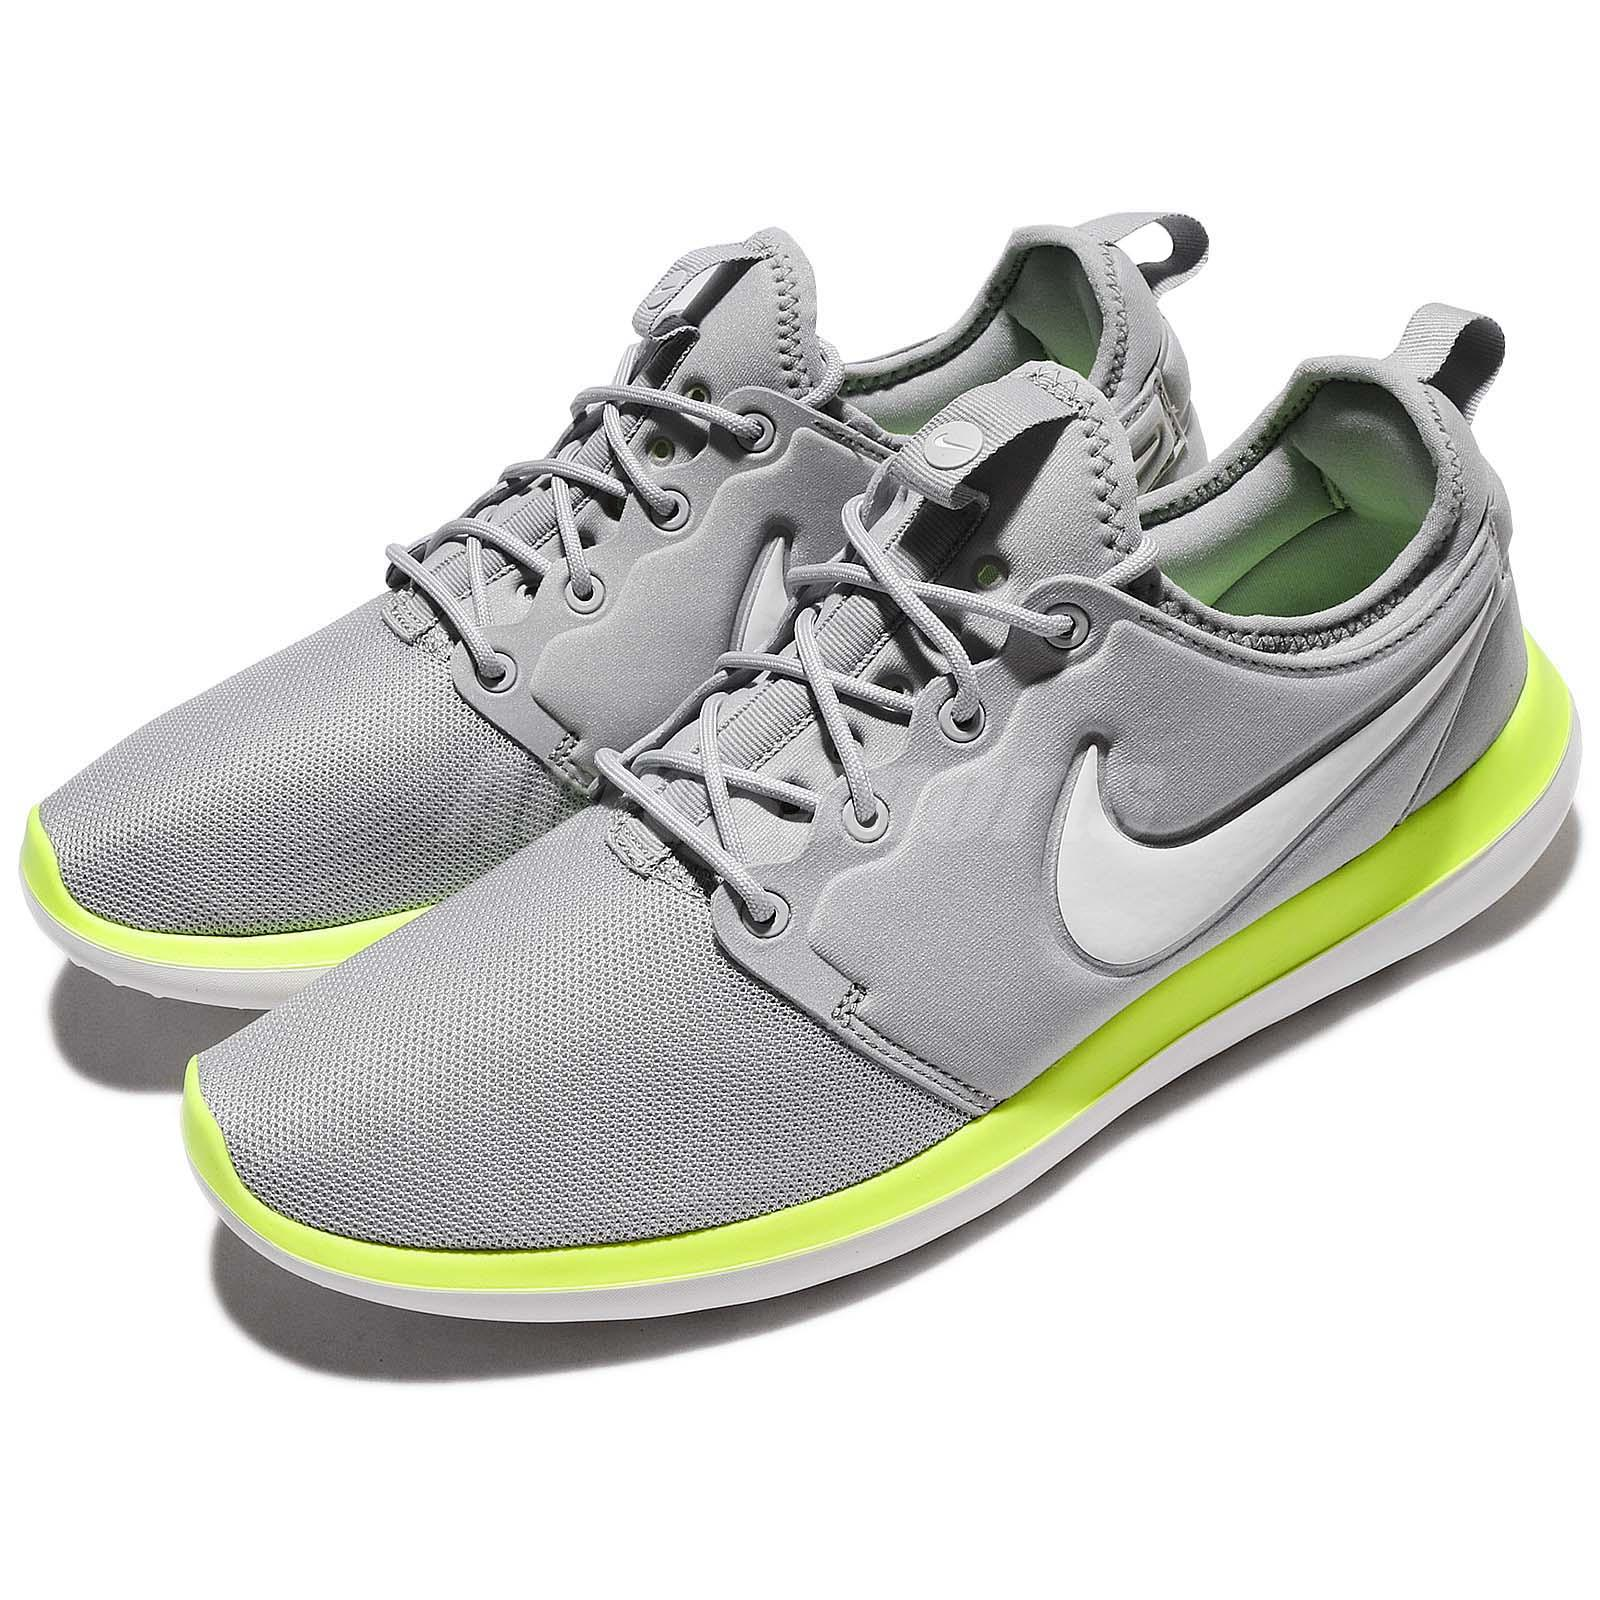 7f149cf09b38 Details about Nike Roshe Two 2 Wolf Grey Green Men Running Shoes Sneakers  844656-007